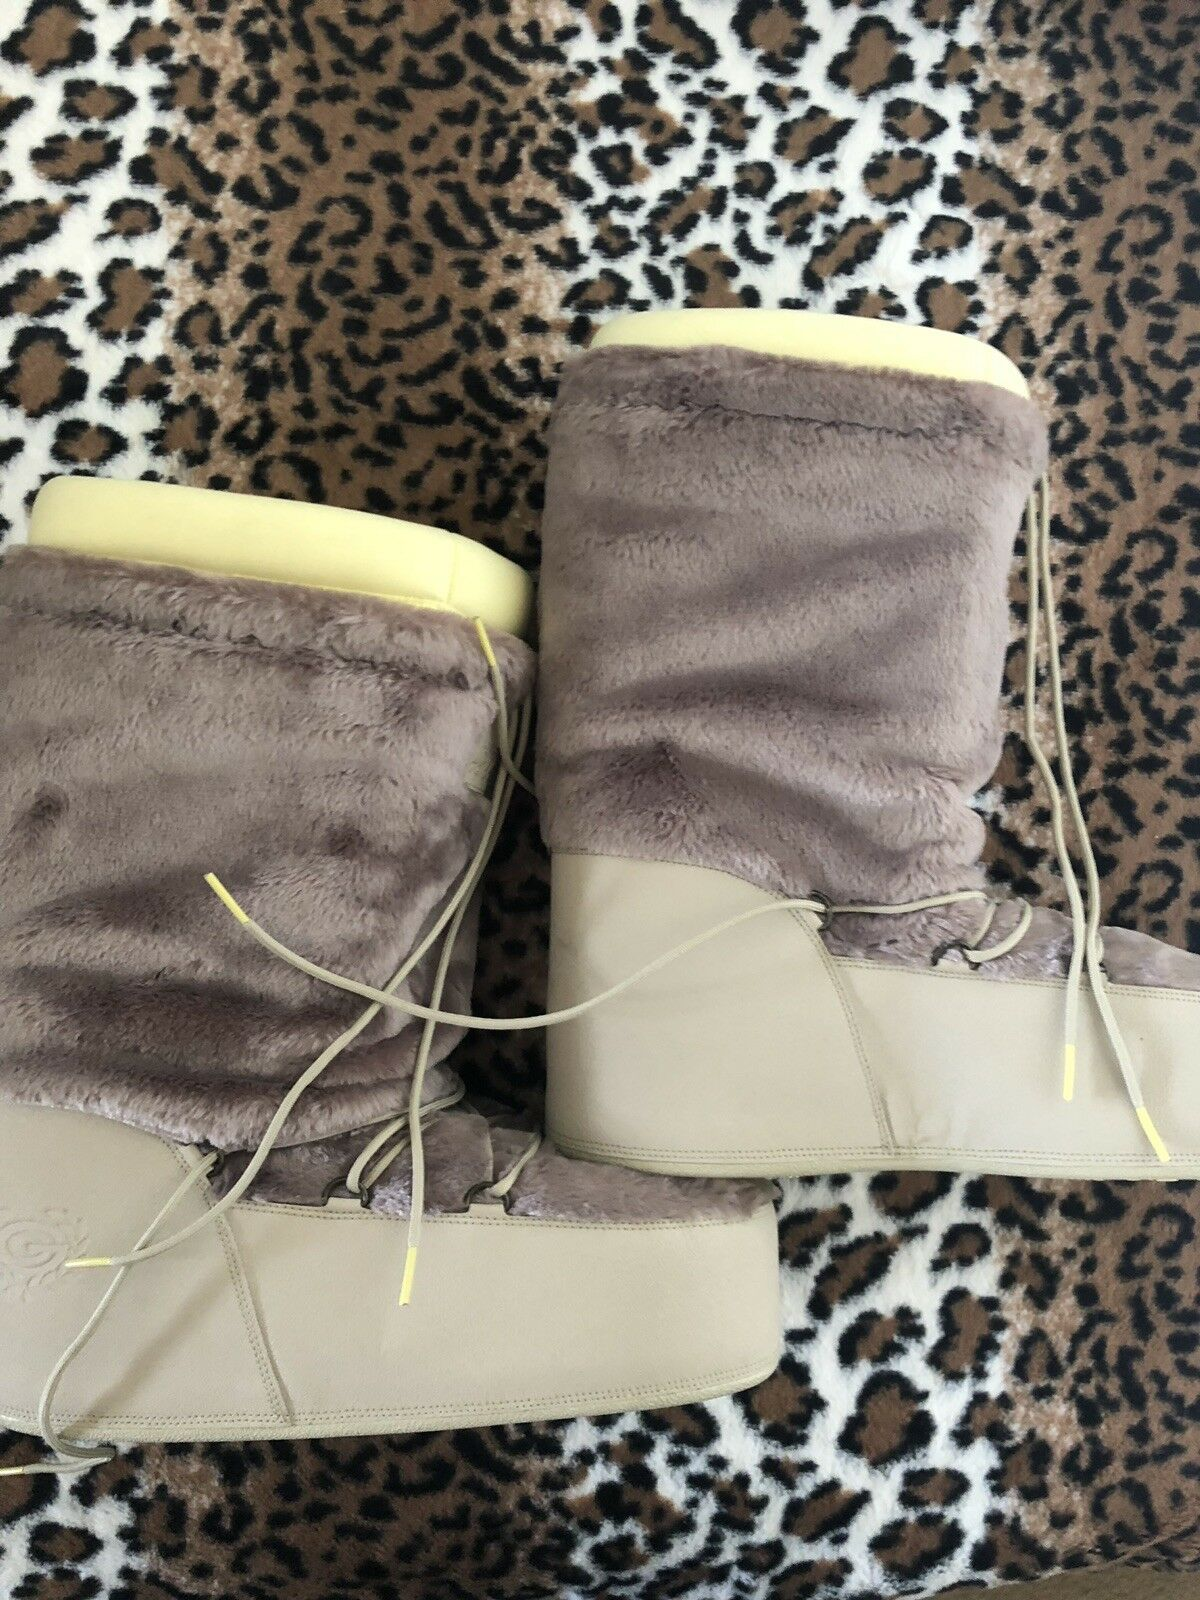 Man's/Woman's New Adidas Woman Moon Boots 9.5 Promotion Quality First Good quality